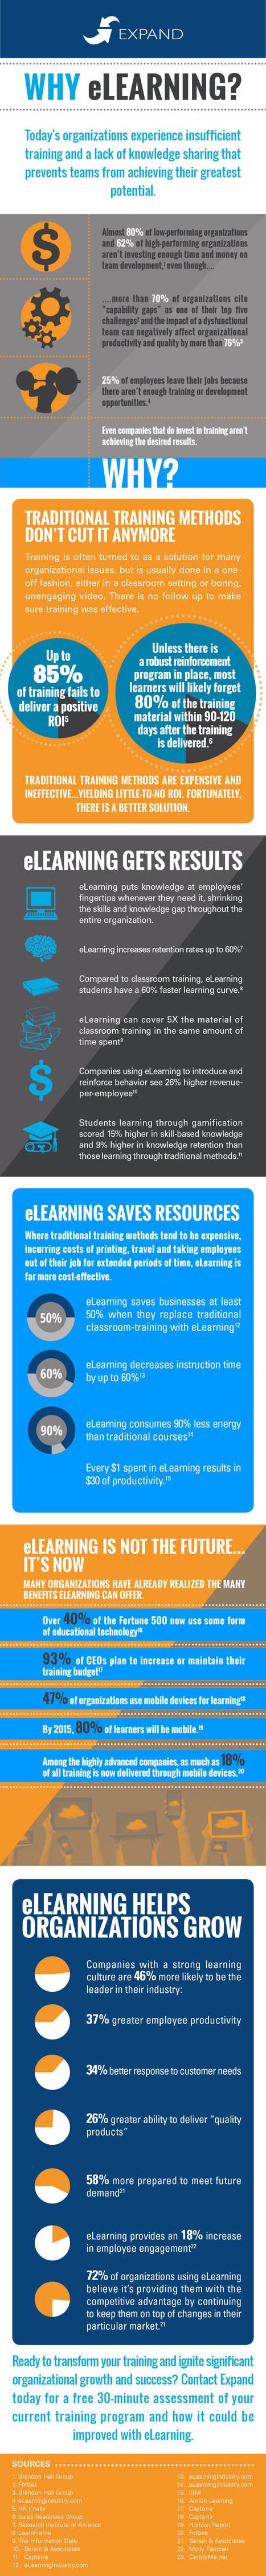 Why eLearning? [Infographic] | Innovation in education | Scoop.it